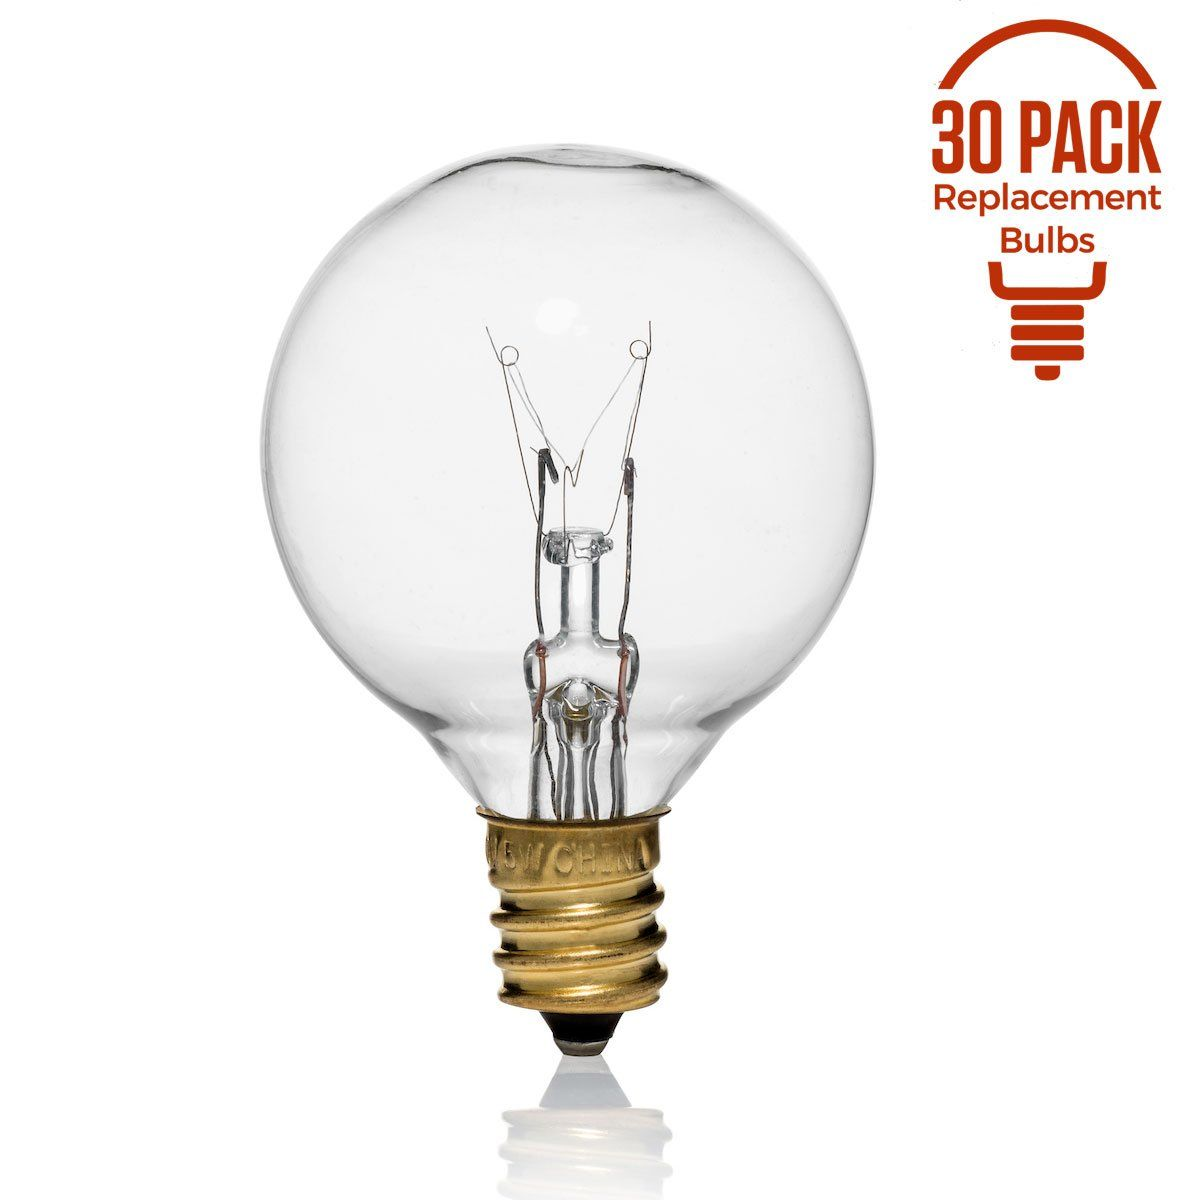 Replacement Bulbs For String Lights Brilliant 30 Pack Of G40 Replacement Bulbs 5 Watt G40 Globe Bulbs For String 2018